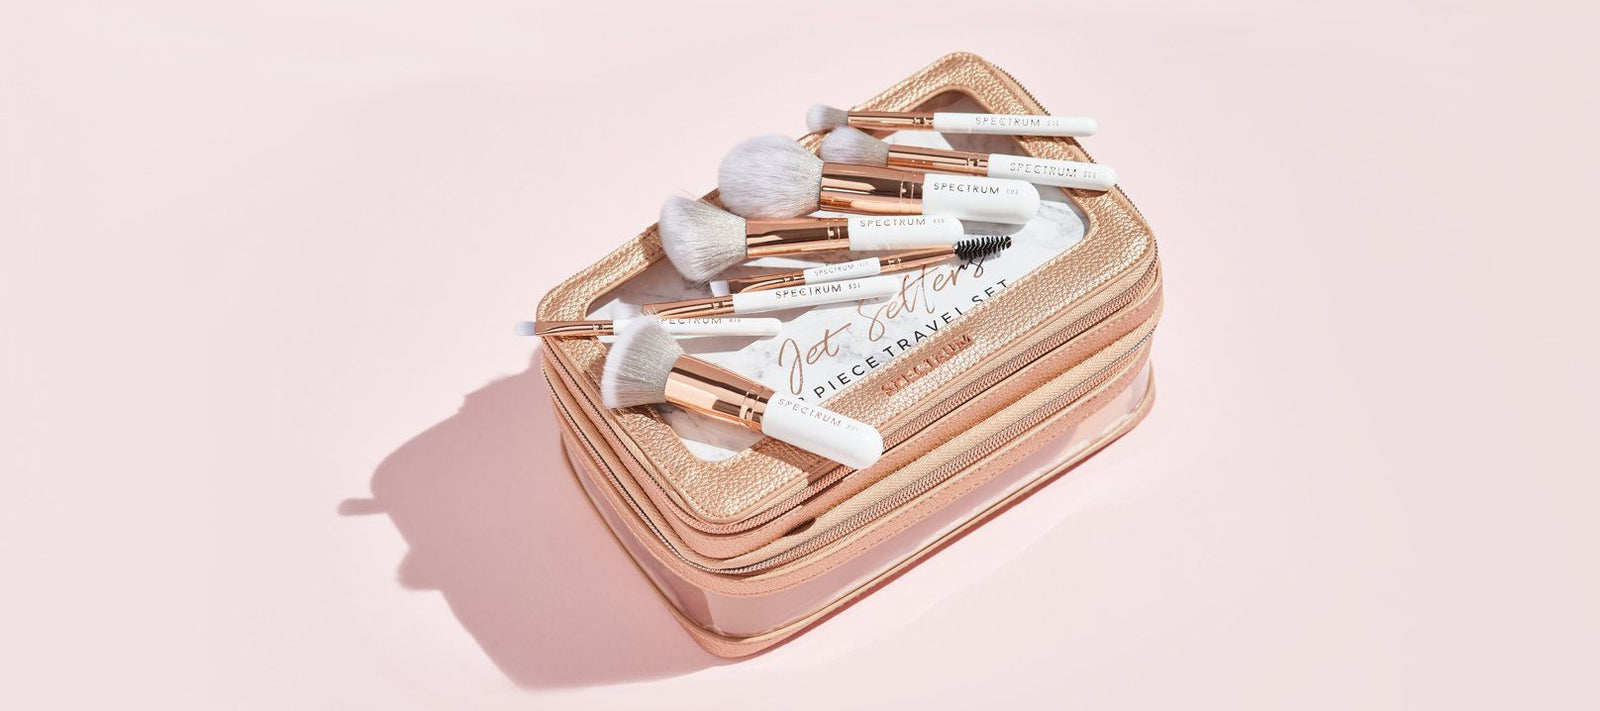 Jet Setters Travel Make-up Brushes